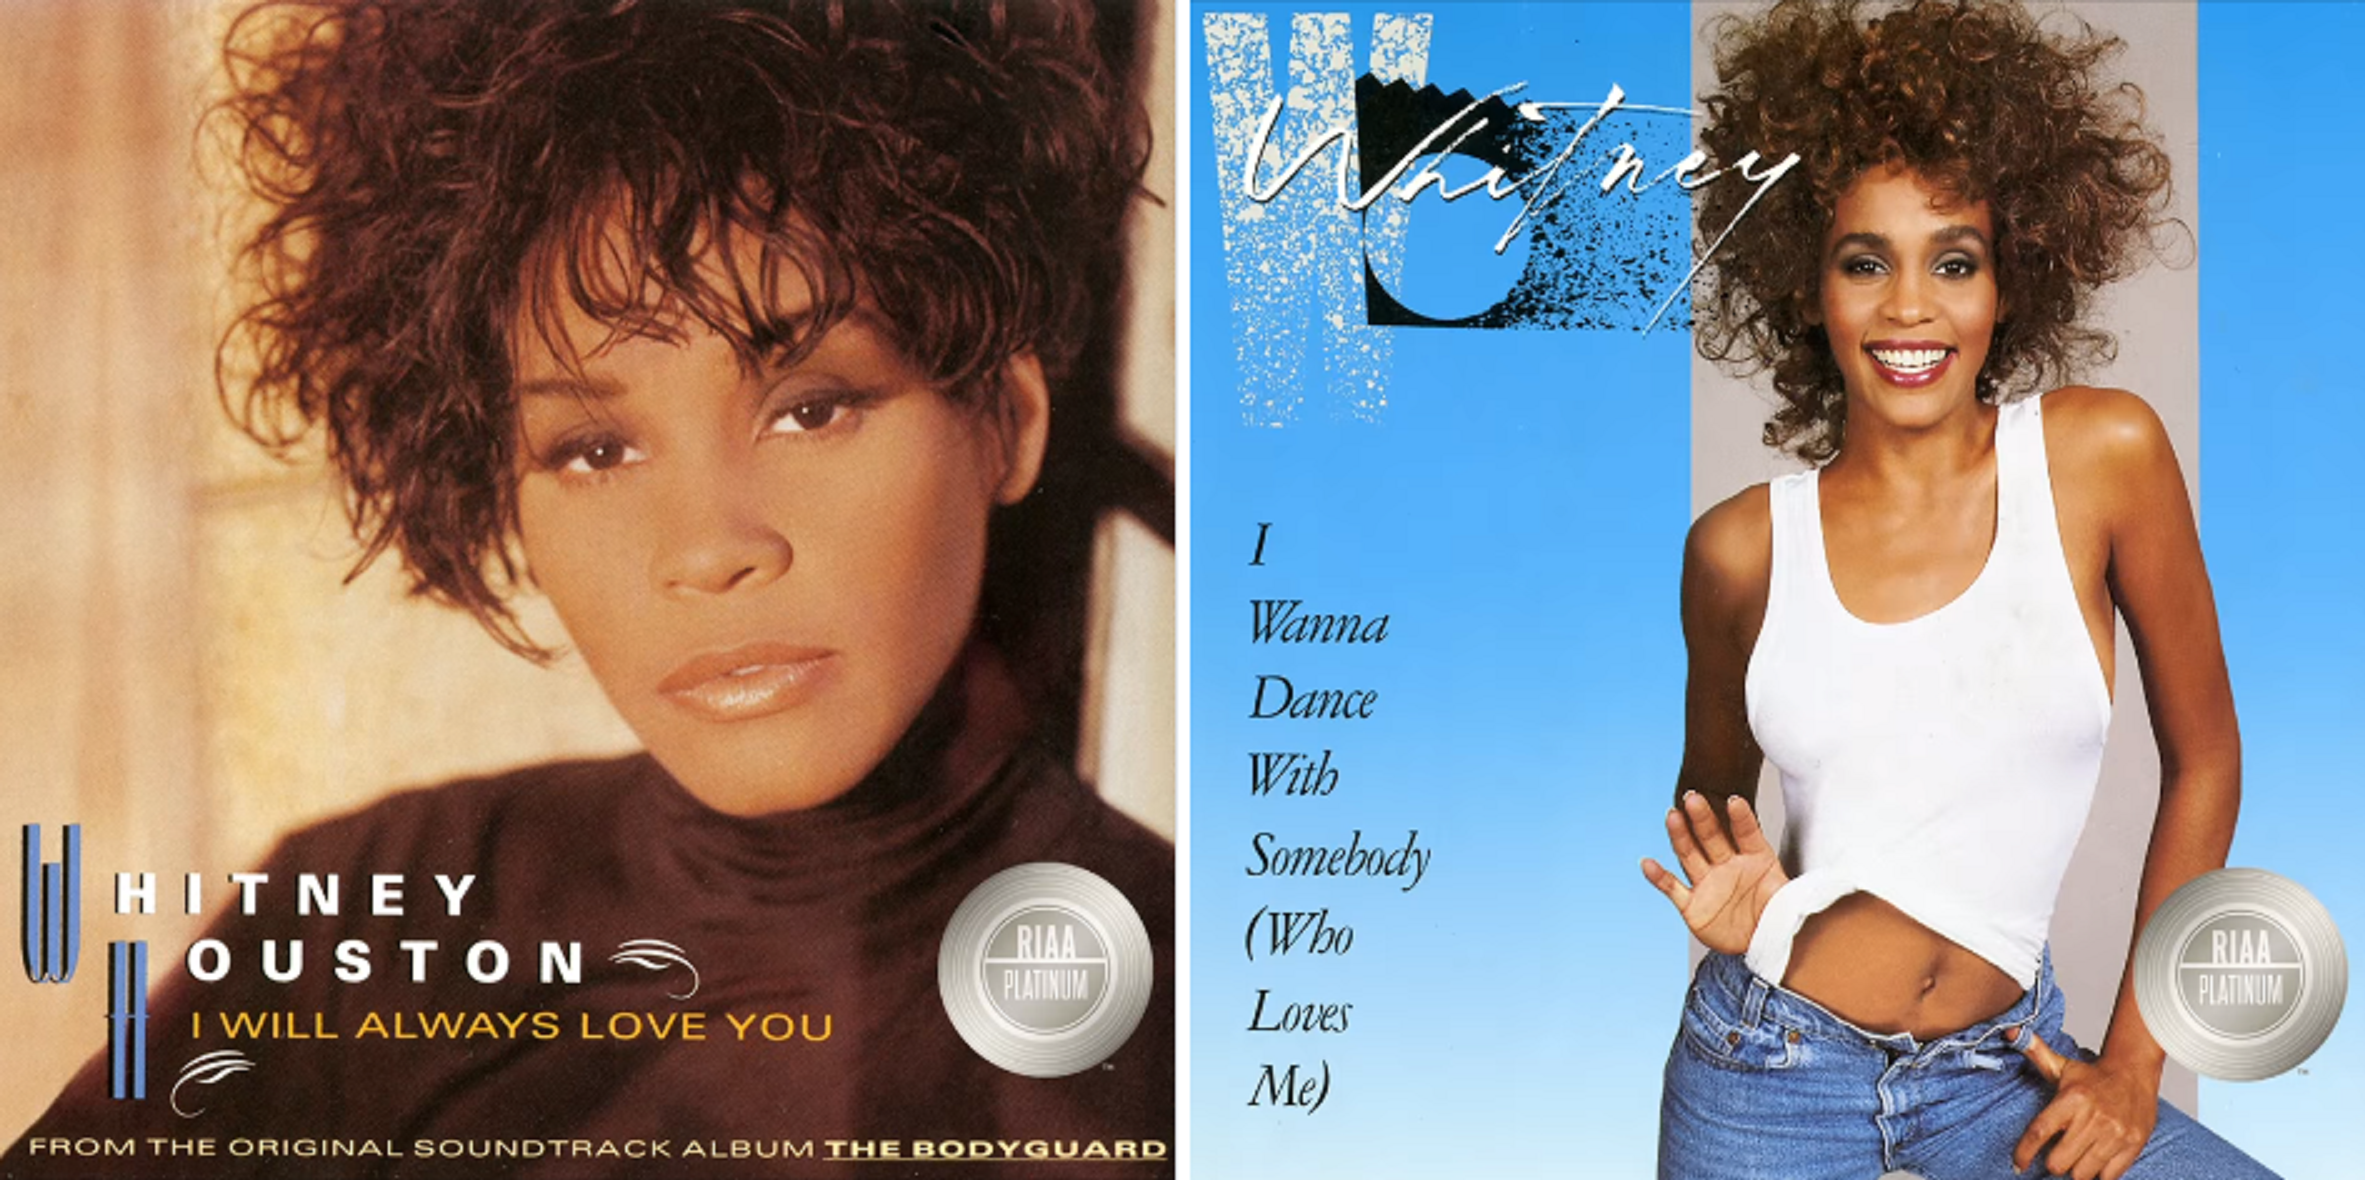 Whitney Houston Receives Multiple New Platinum/Gold Certifications On 11 Of Her Classics